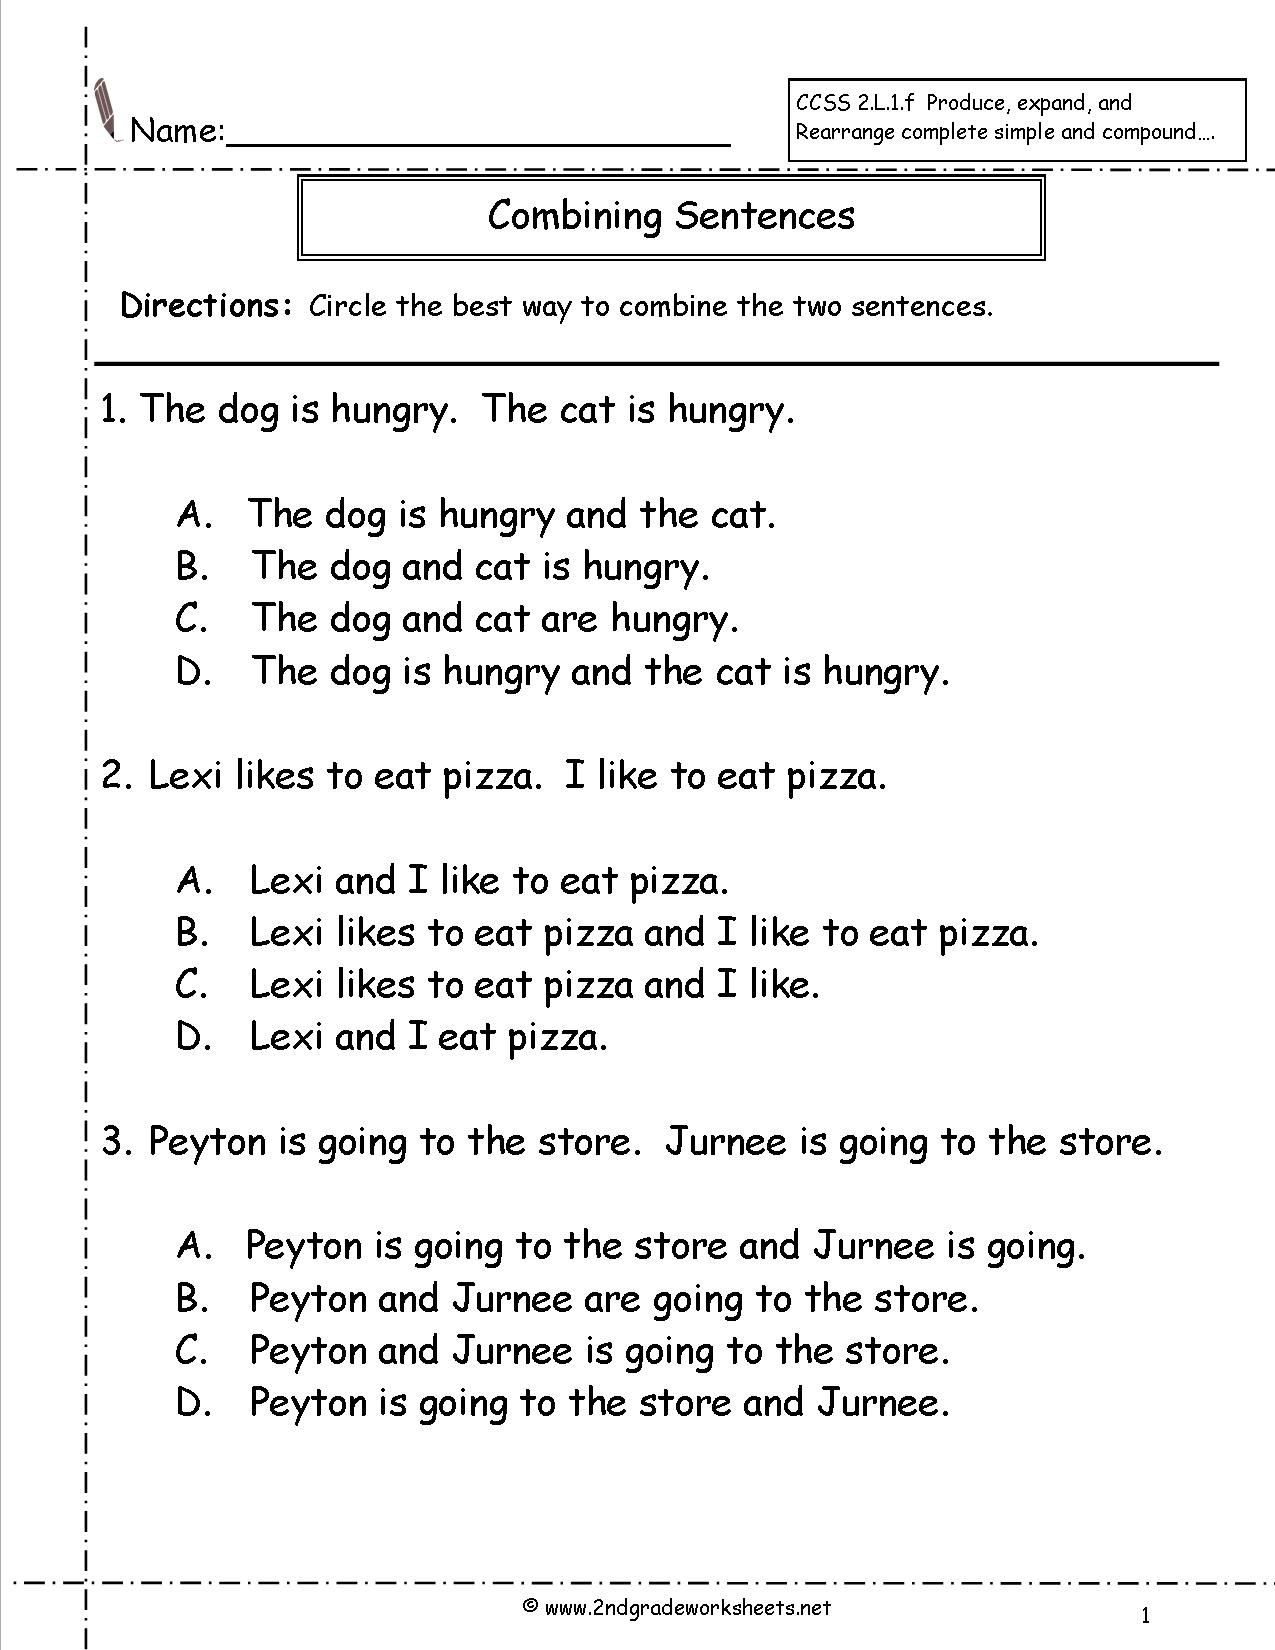 Topic Sentence Worksheets 5th Grade Bining Sentences Worksheet with Images